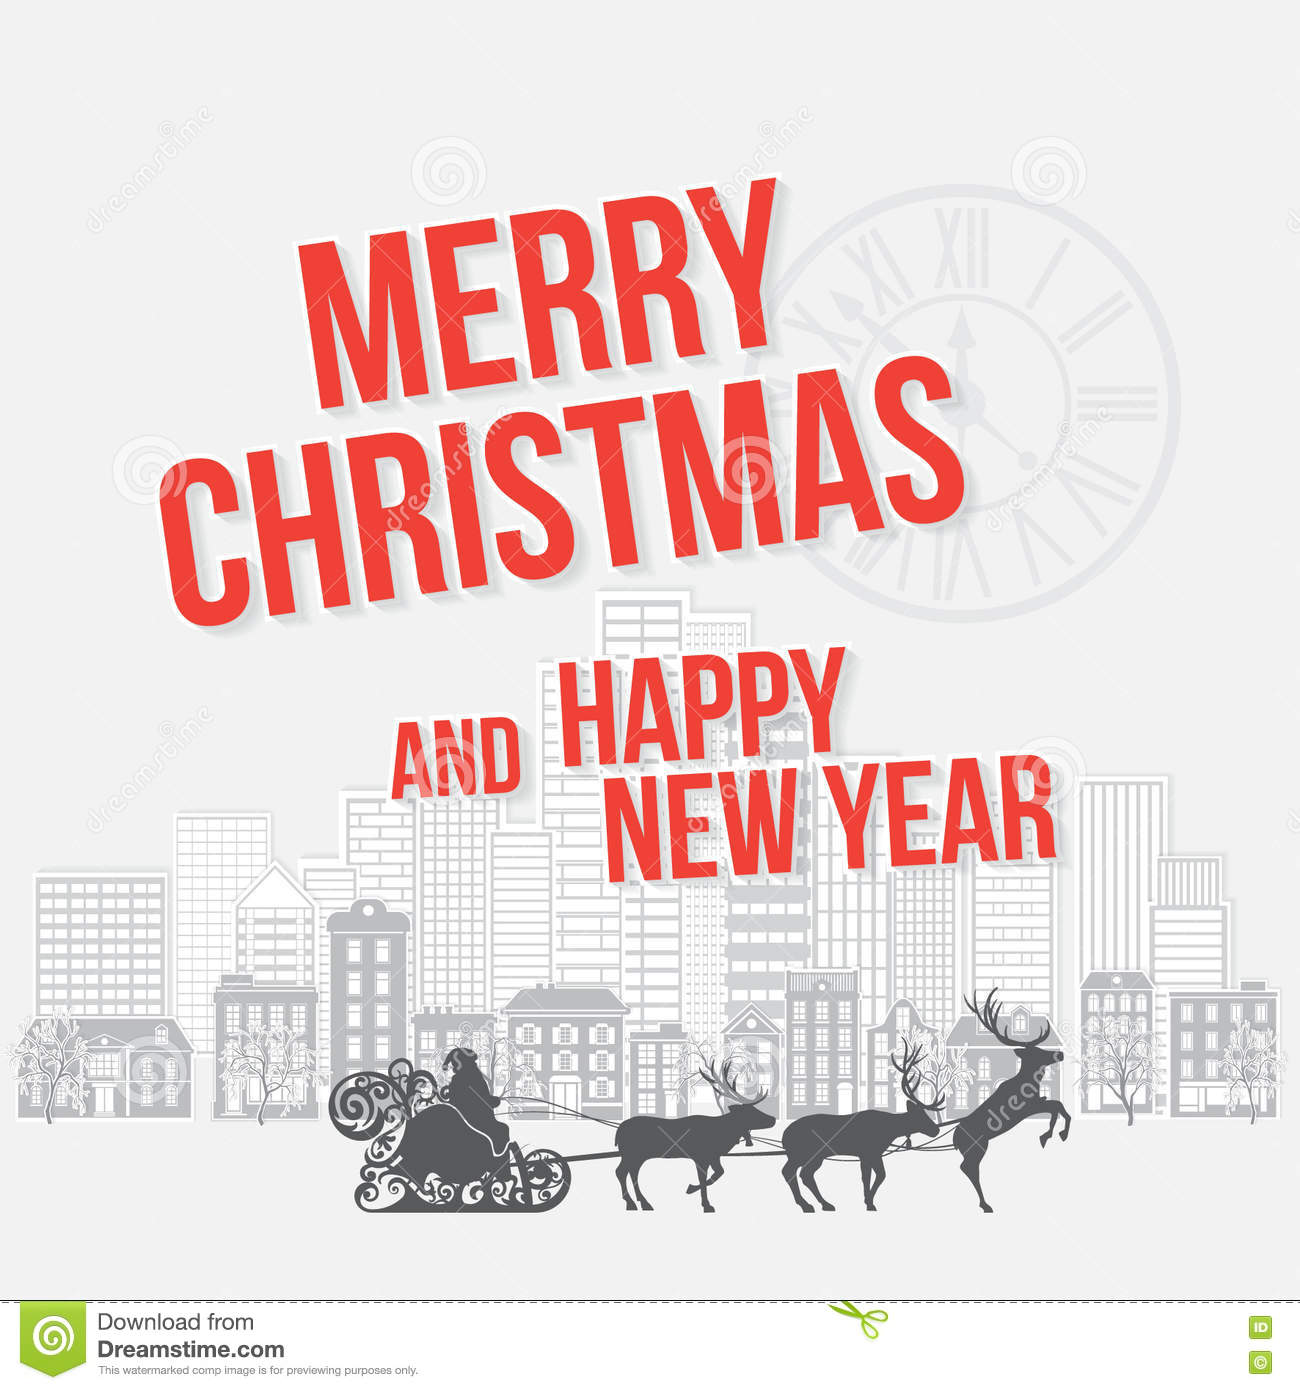 Merry christmas and happy new year greetings card stock illustration download merry christmas and happy new year greetings card stock illustration illustration of greeting m4hsunfo